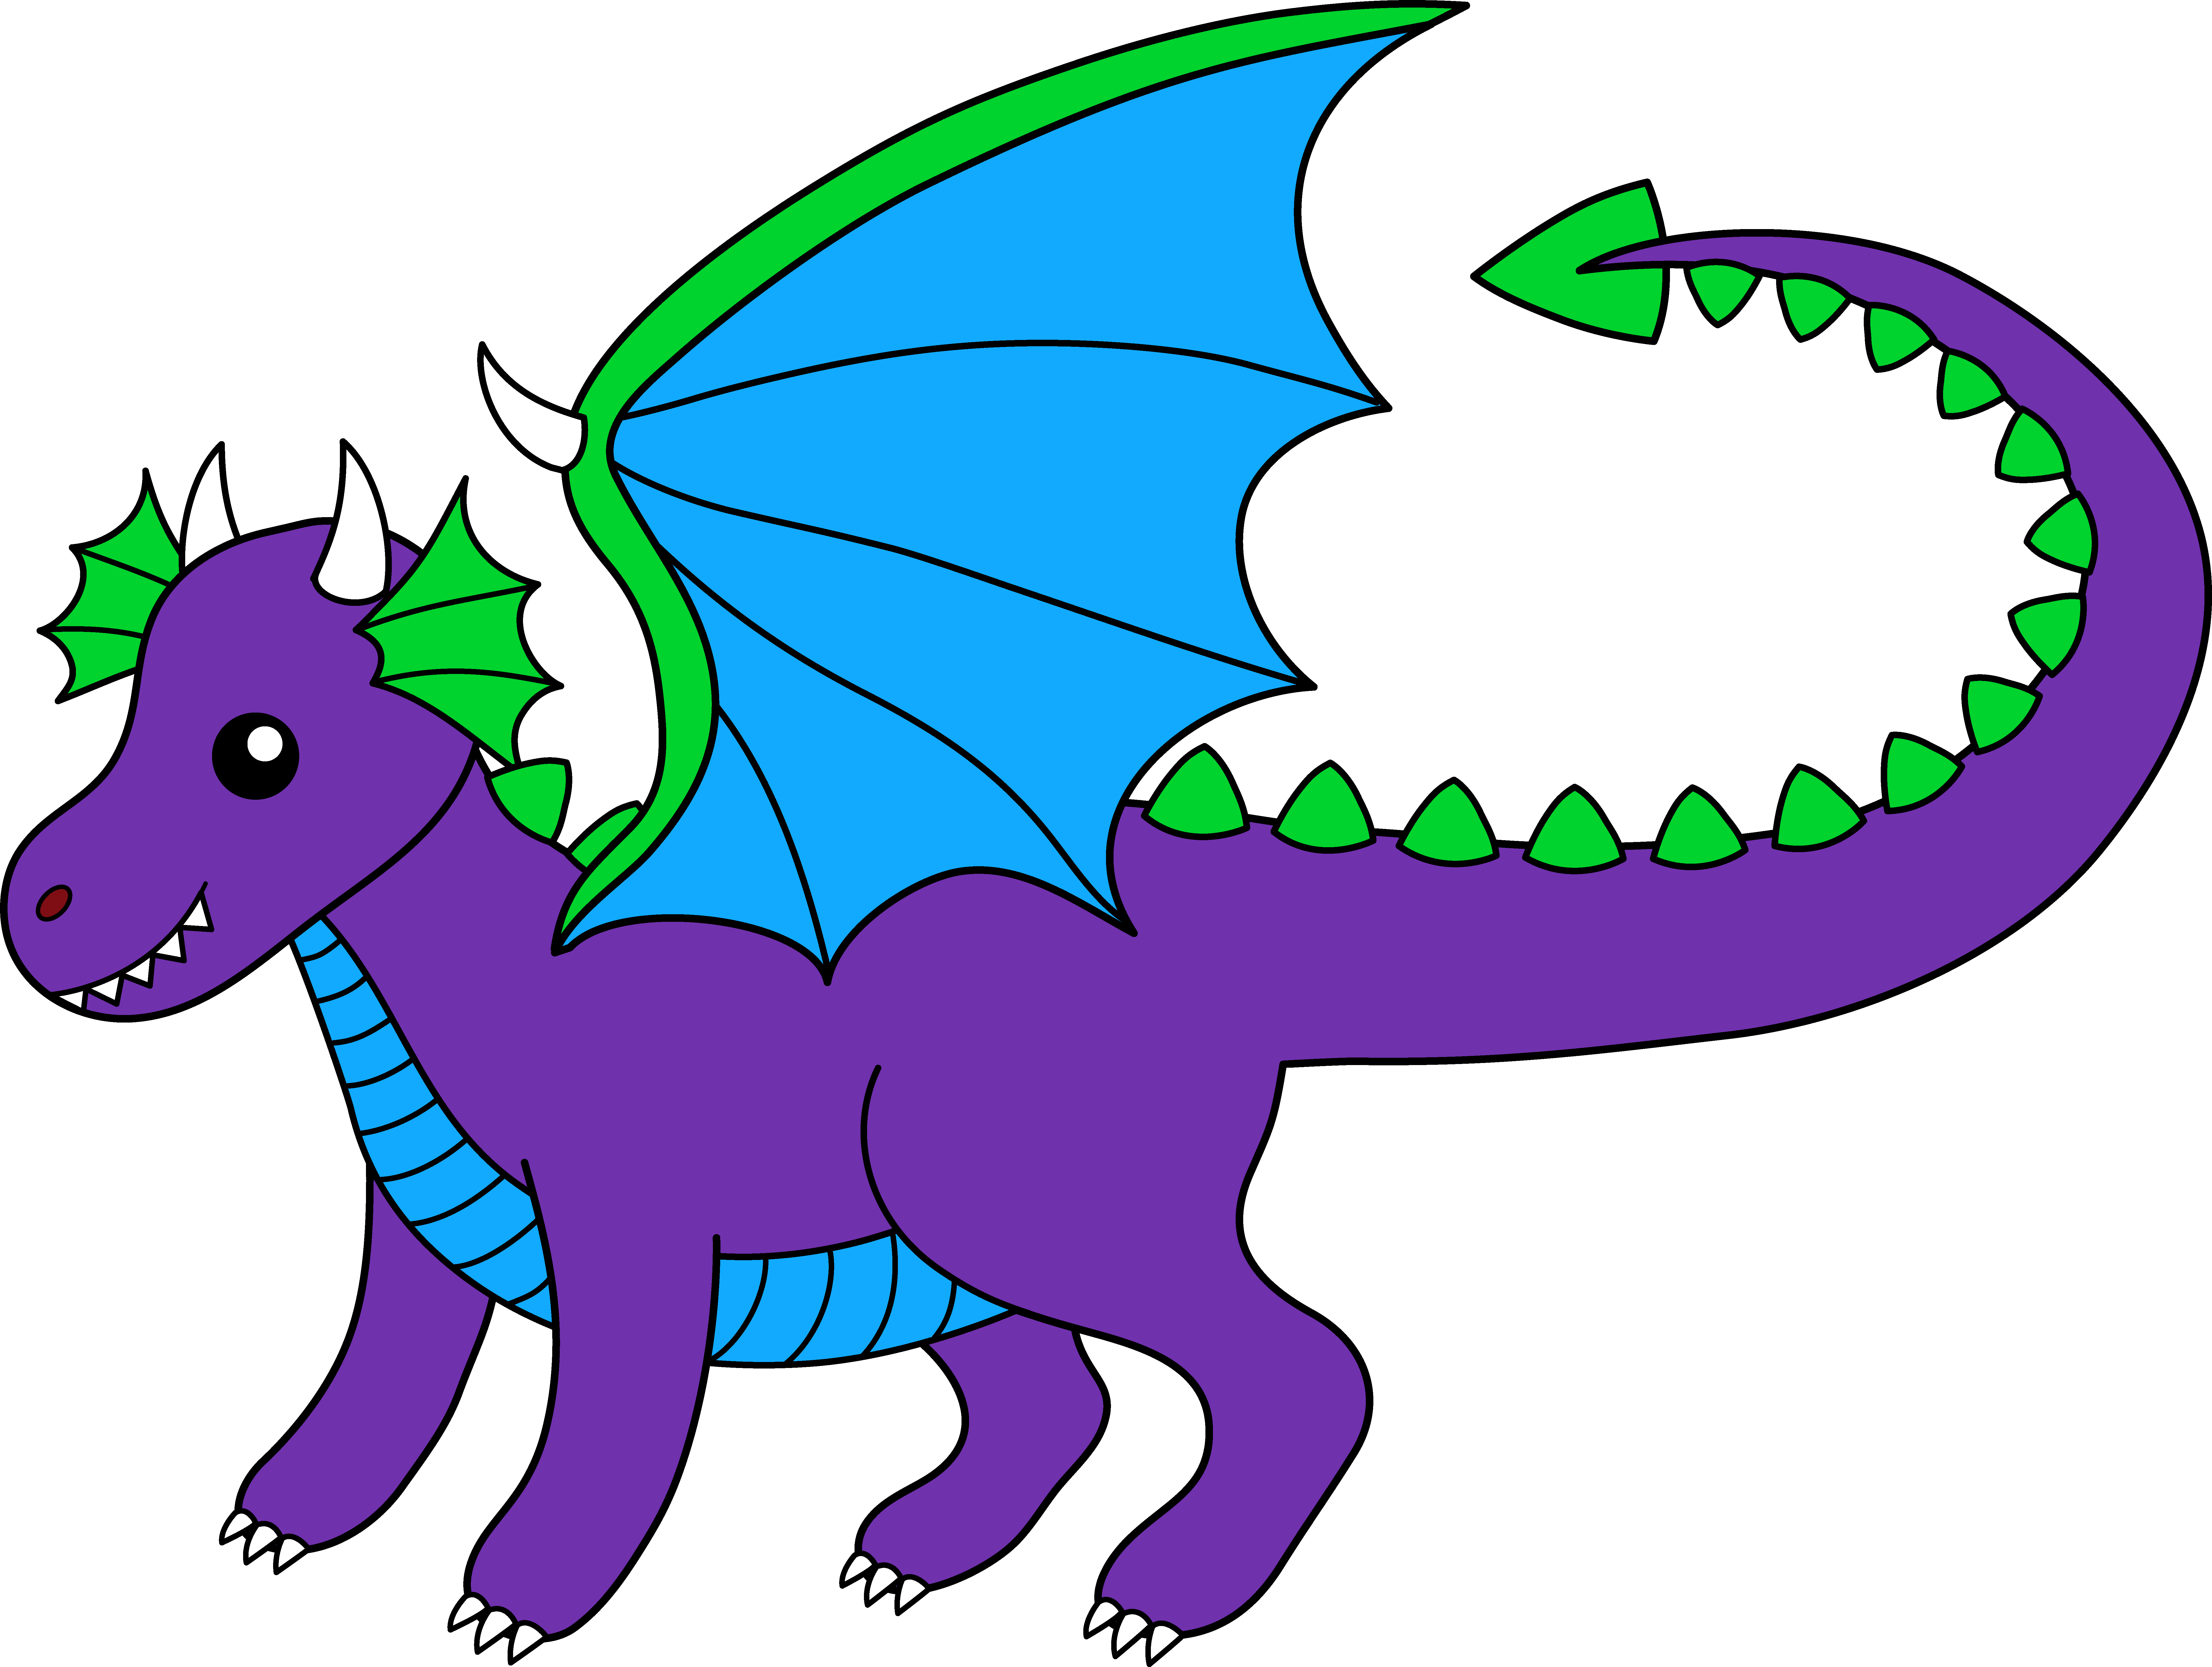 Dragon clipart for kids jpg freeuse library Free Pictures Dragons, Download Free Clip Art, Free Clip Art ... jpg freeuse library